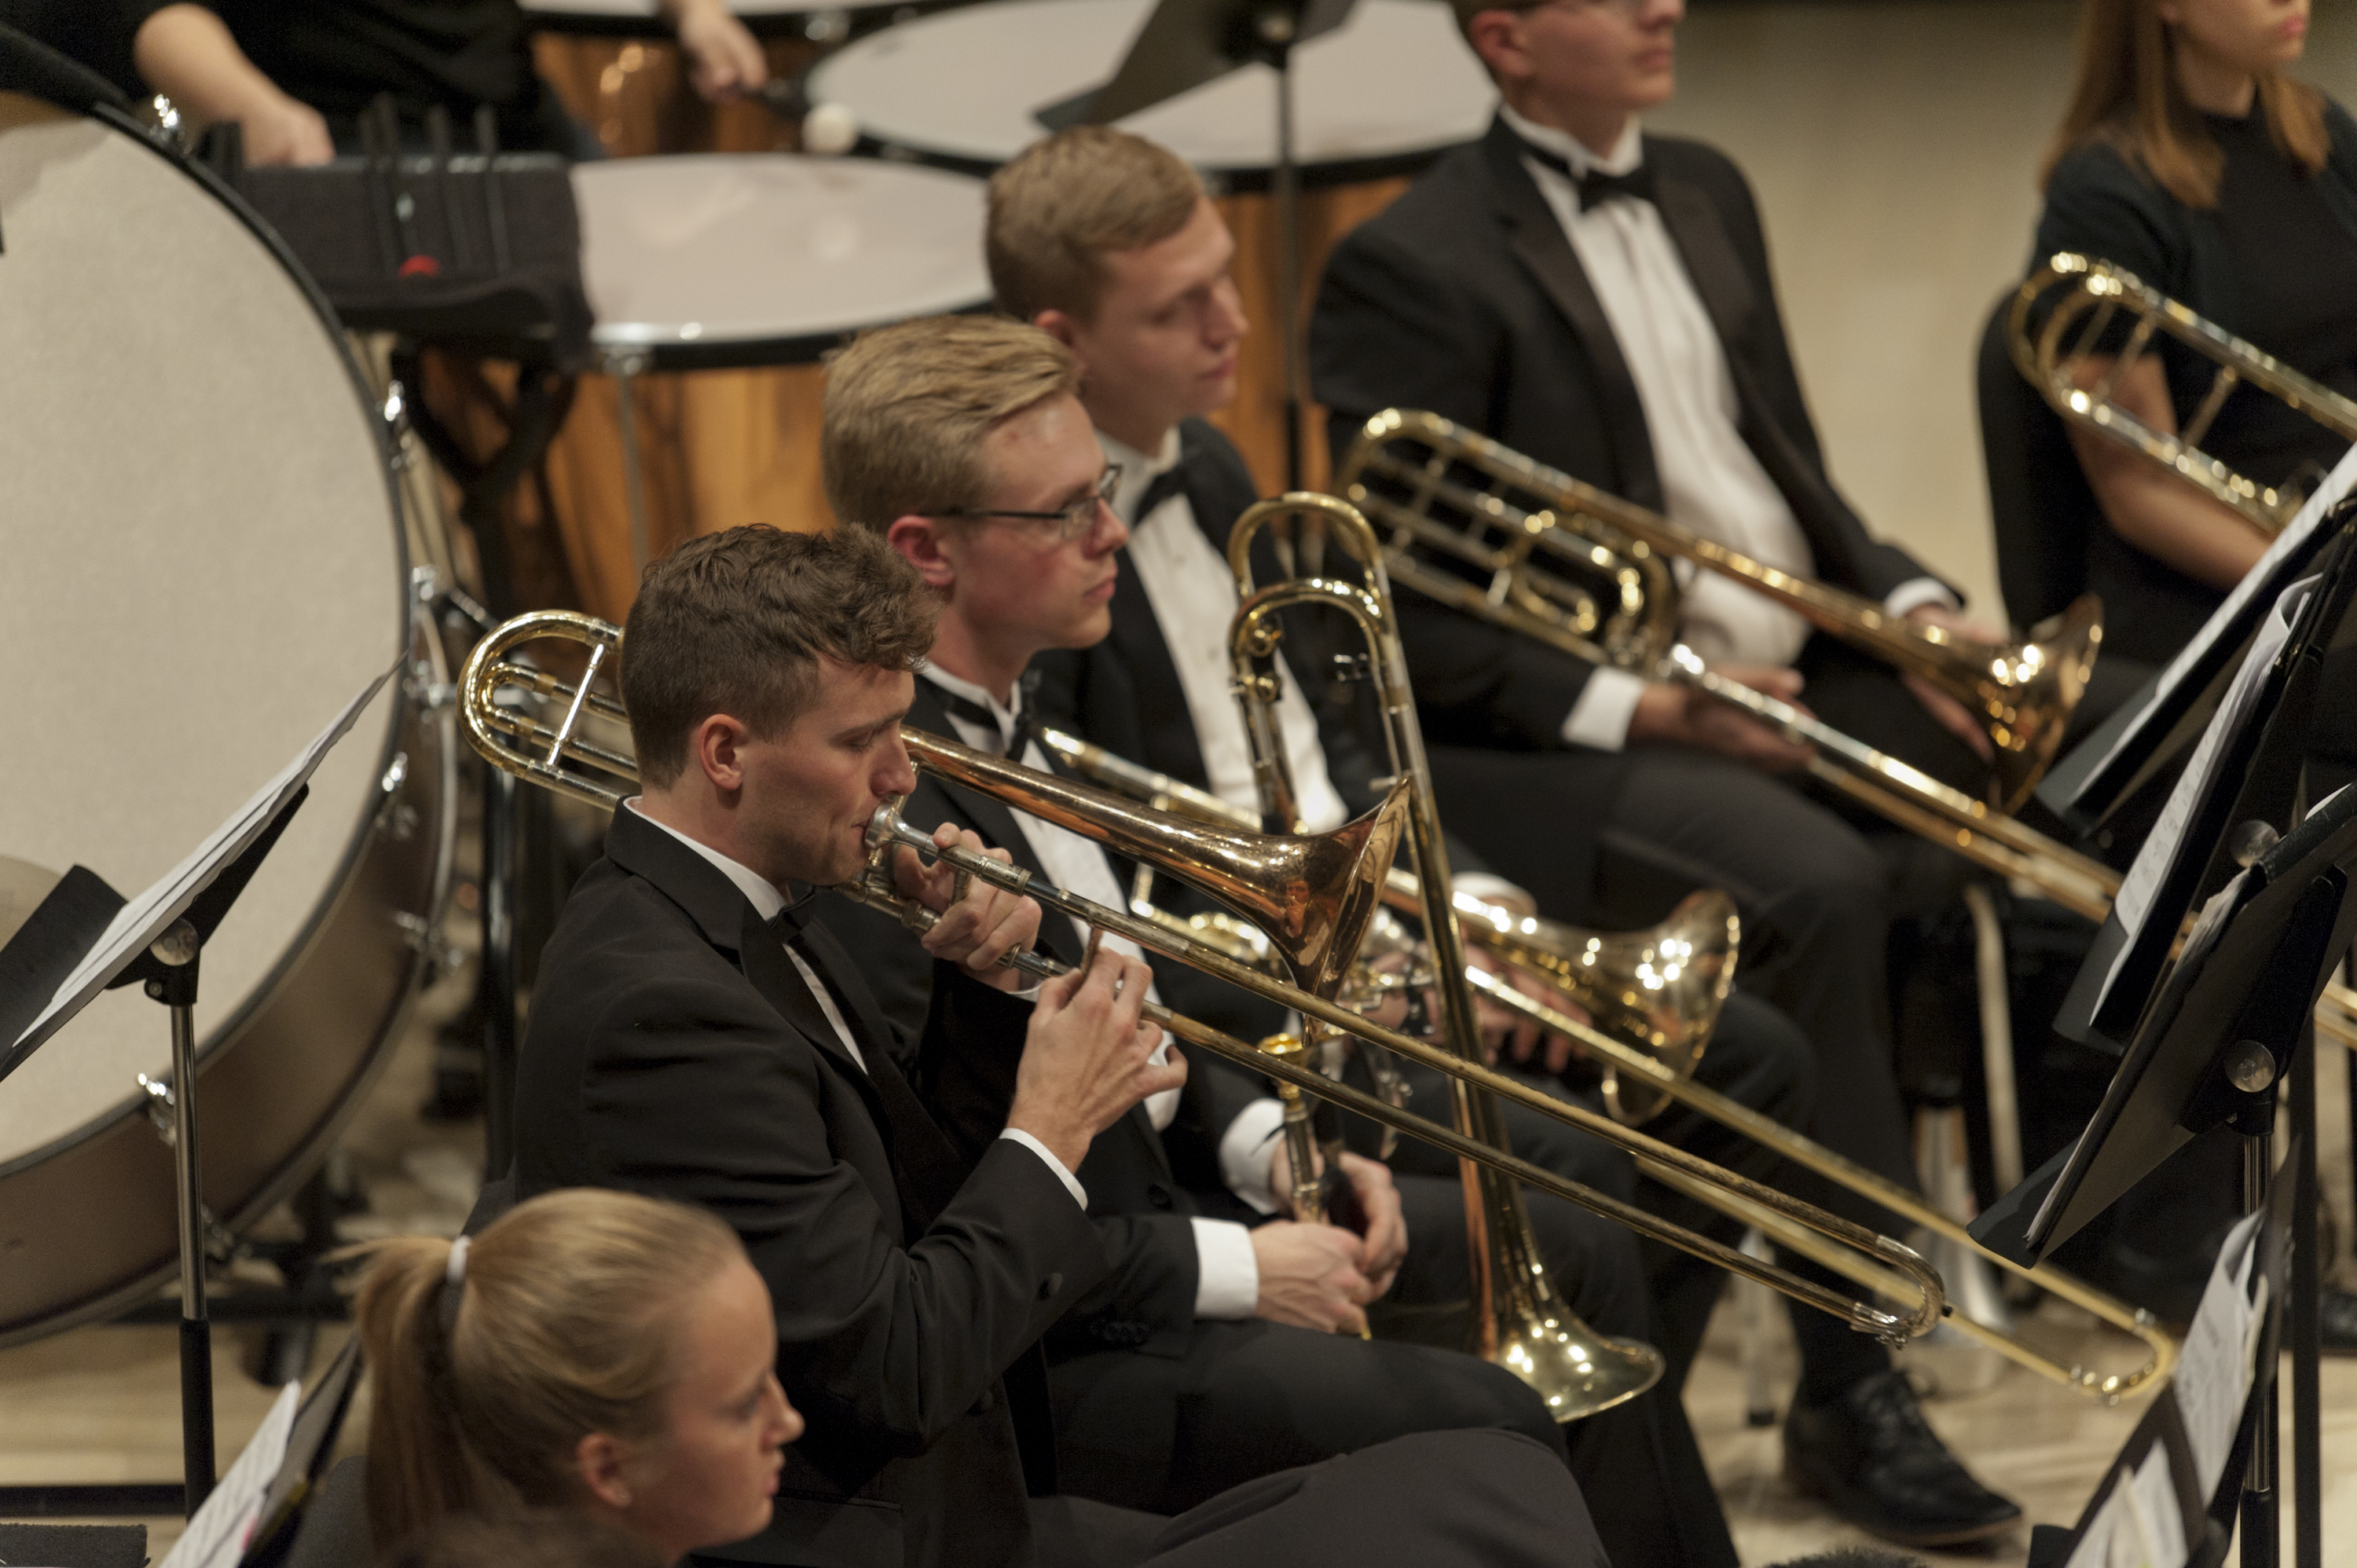 UI Symphony Band performs in the Concert Hall